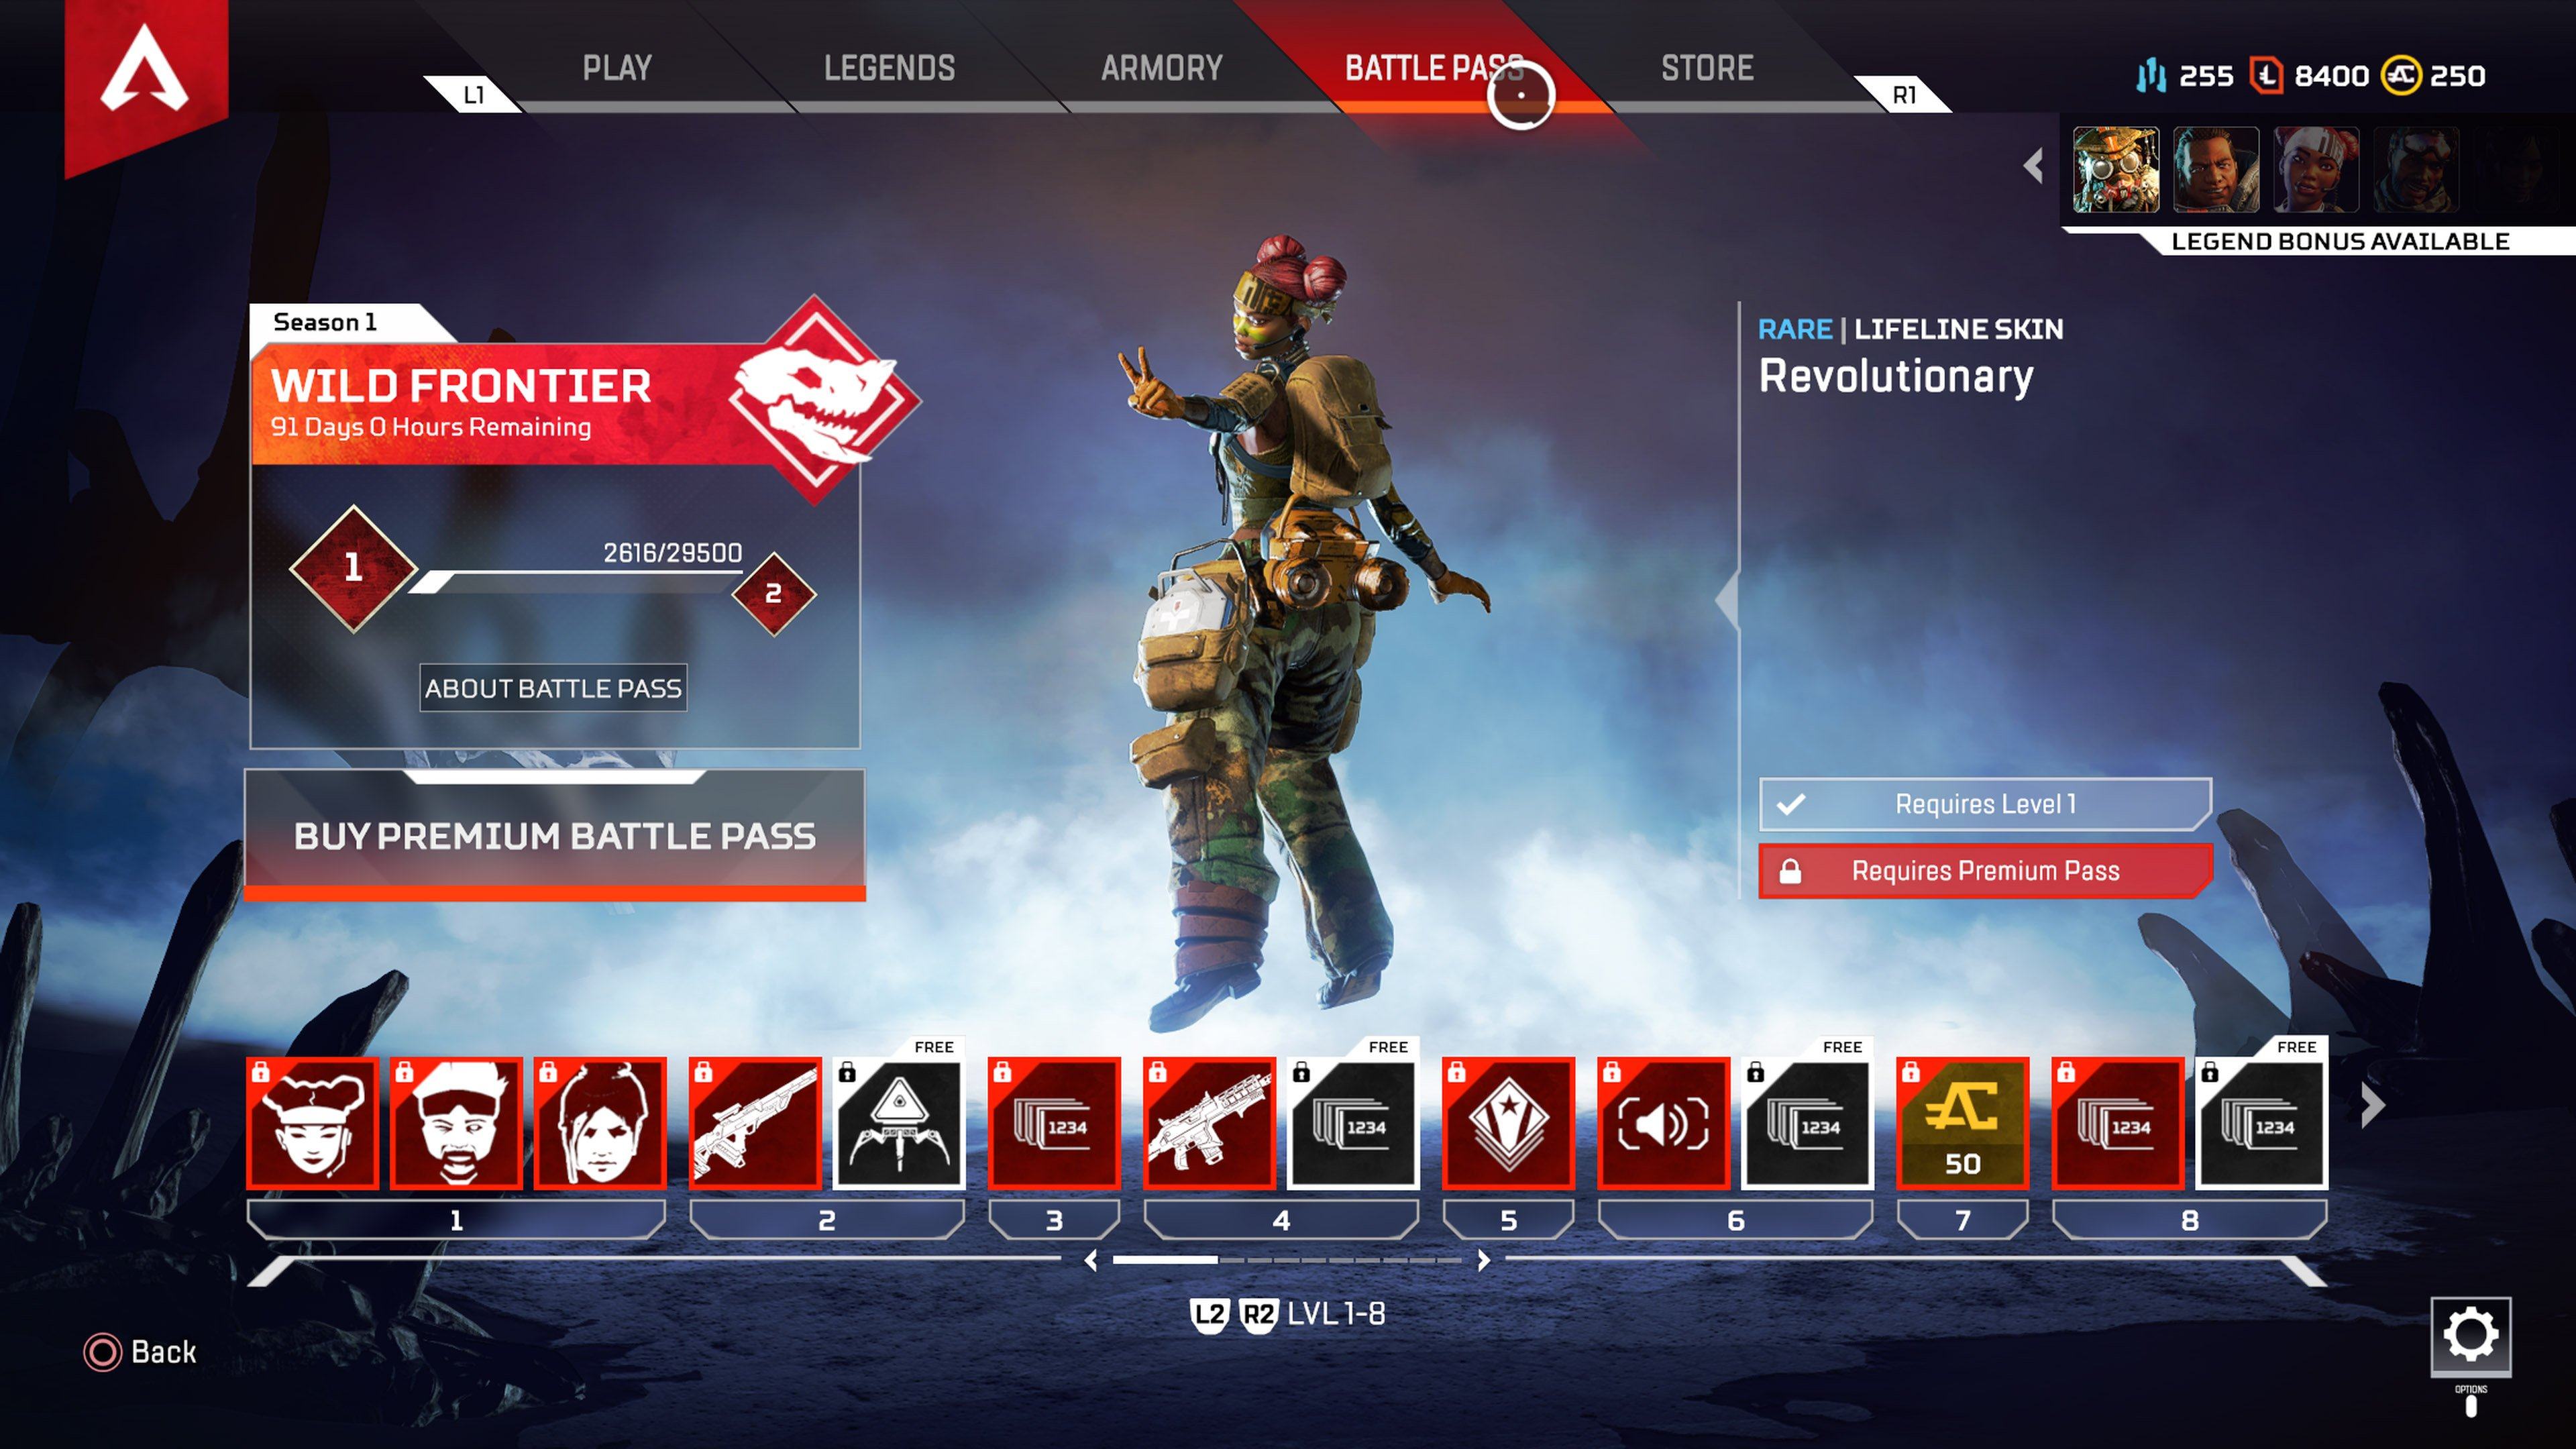 Apex Legends update 1.0 adds battlepass